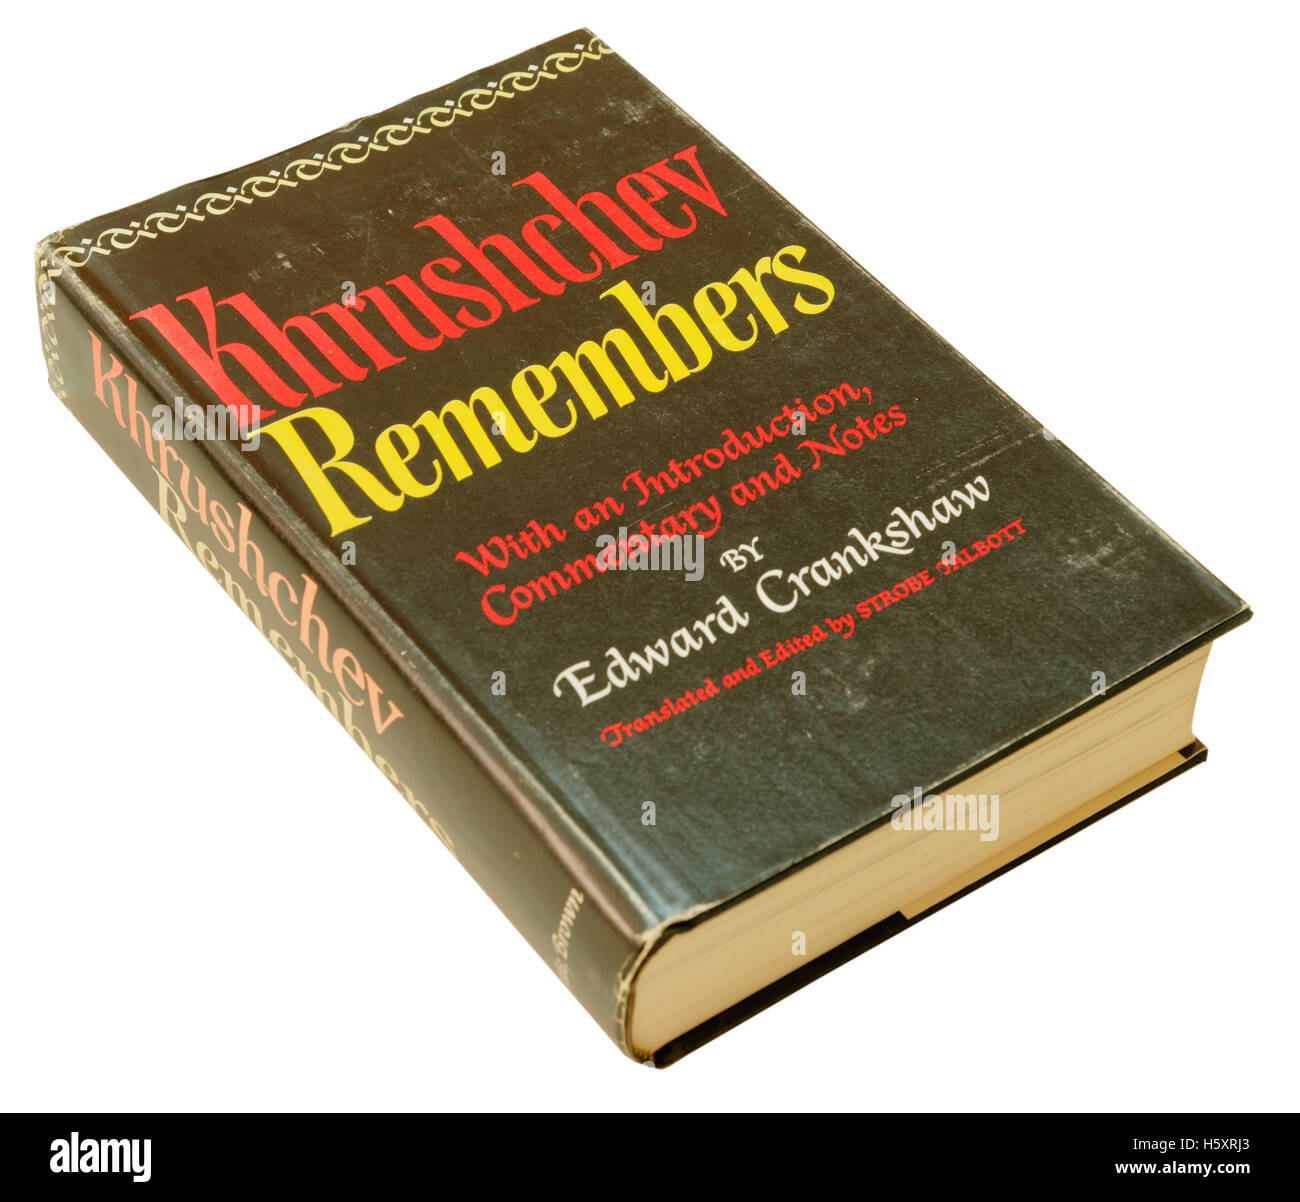 Khrushchev Remembers autobiography of Nikita Khrushchev - Stock Image